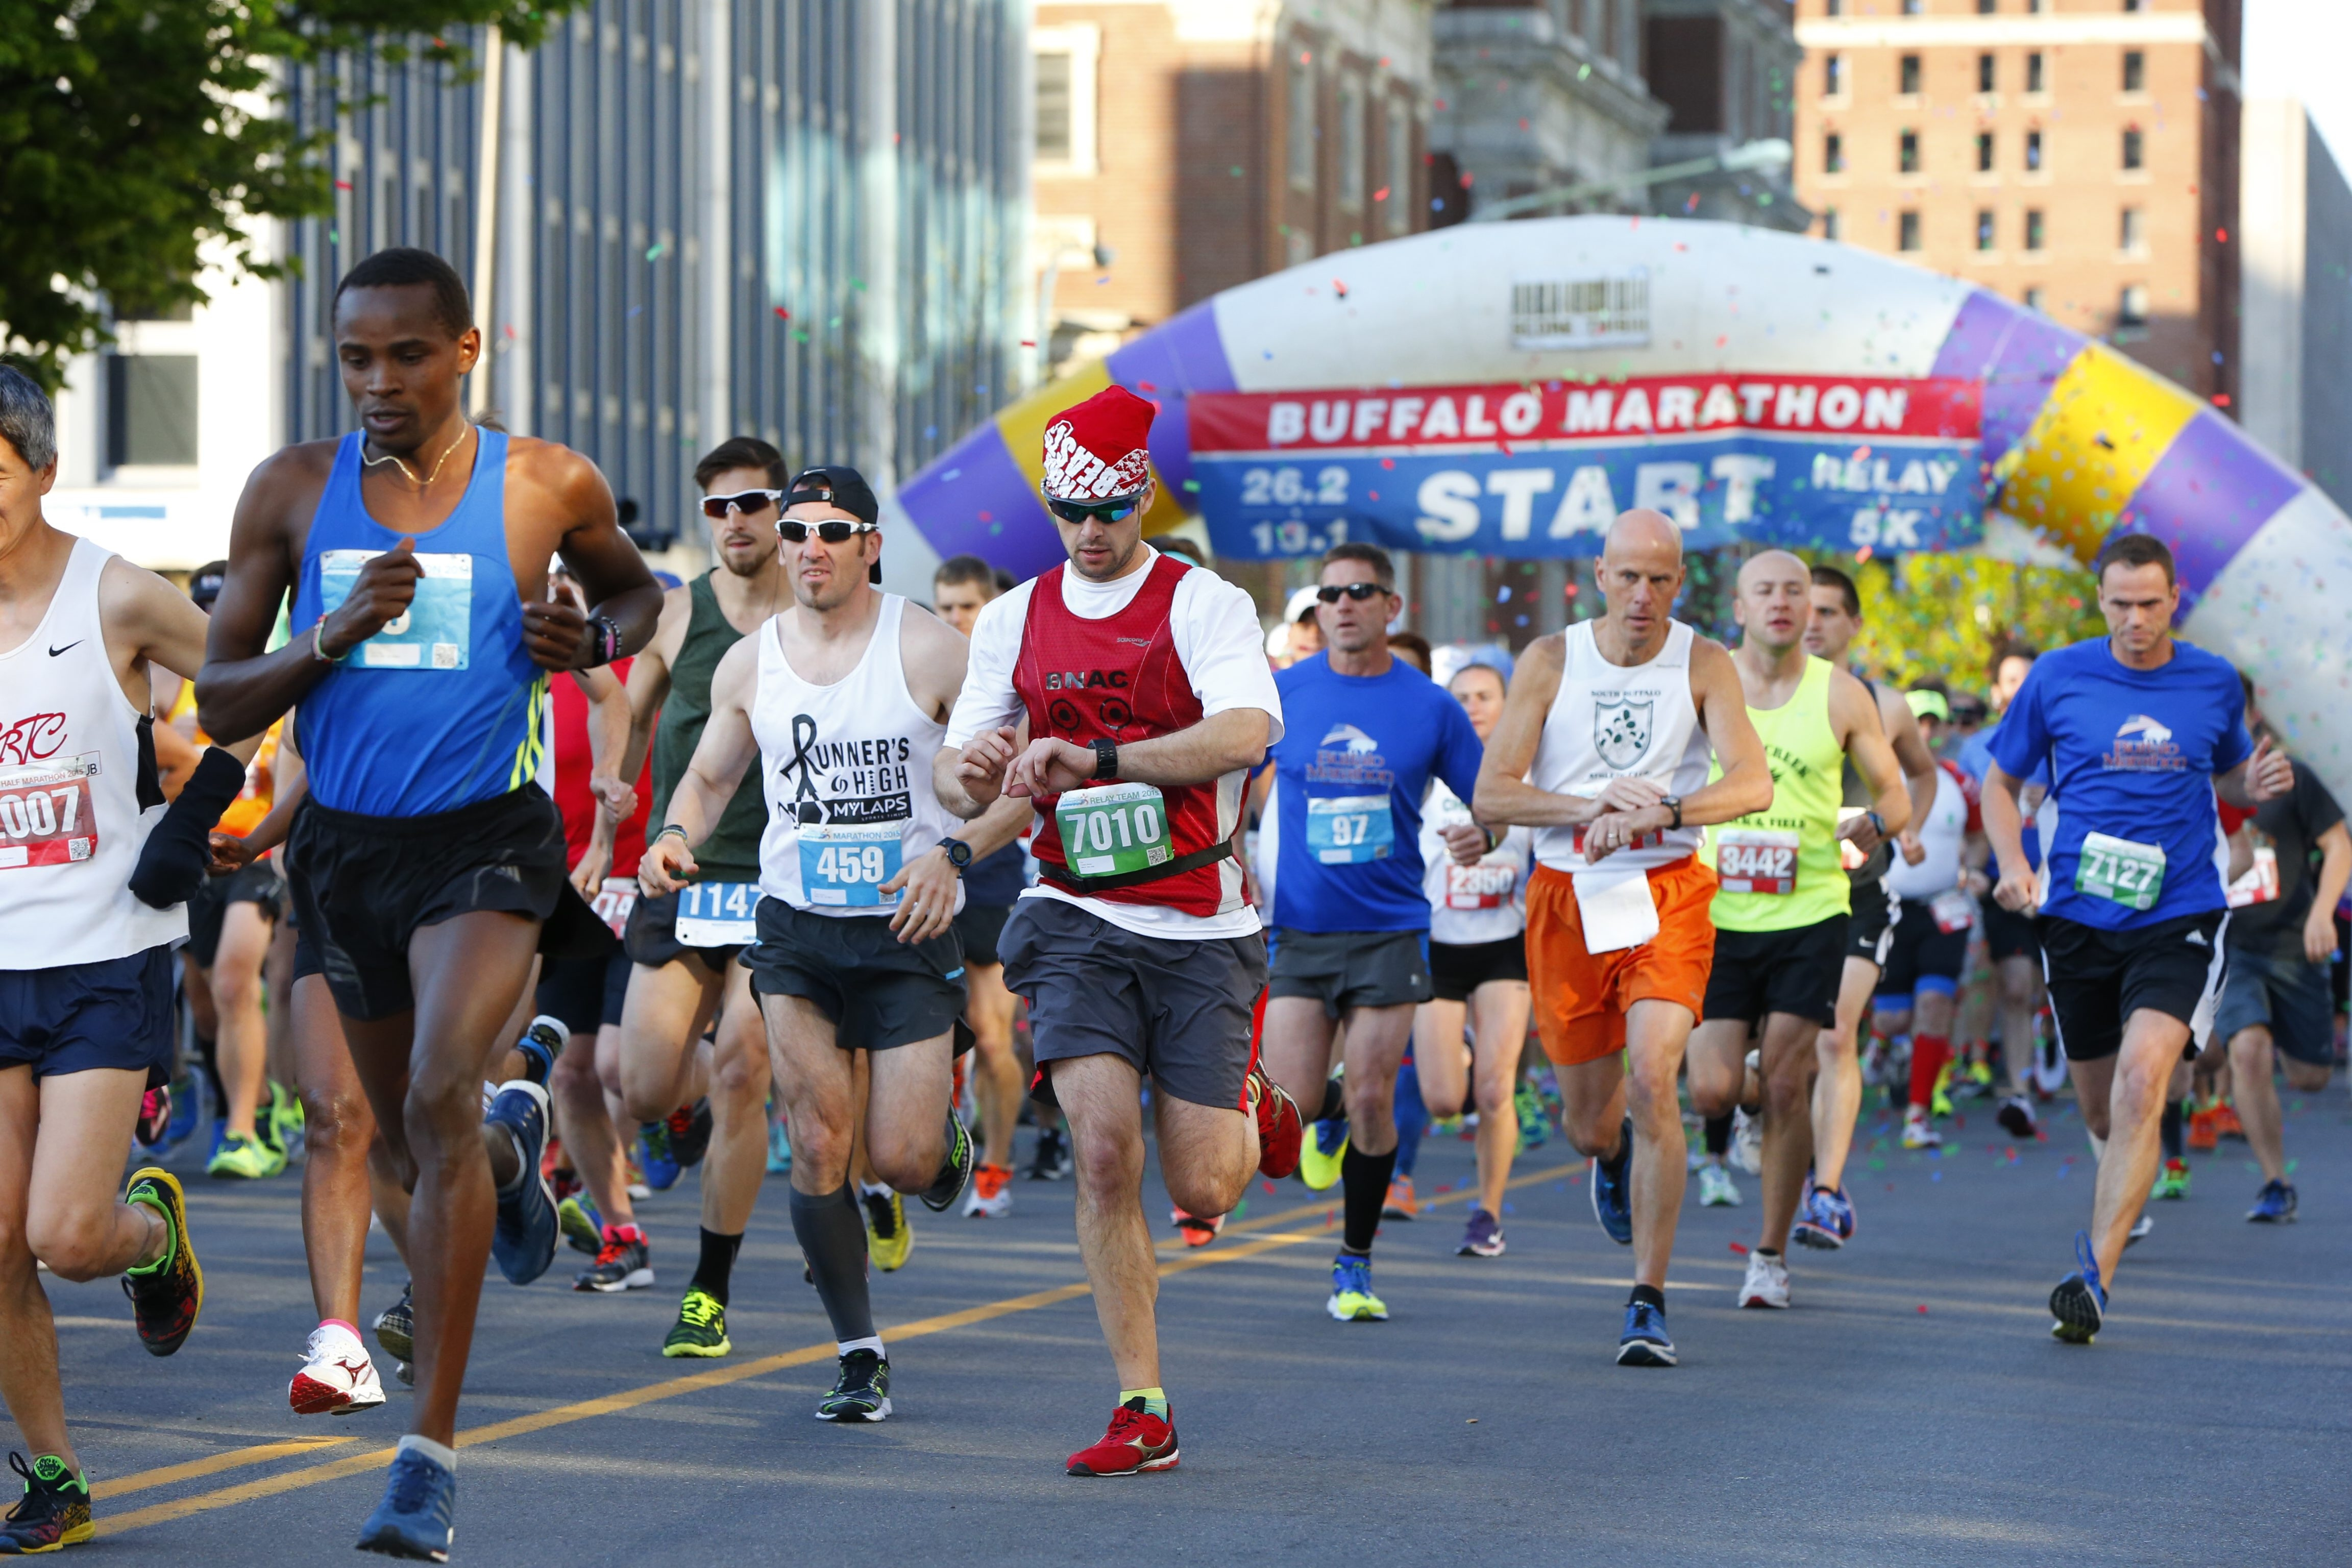 Runners participate in last year's Buffalo Marathon on May 24, 2015.